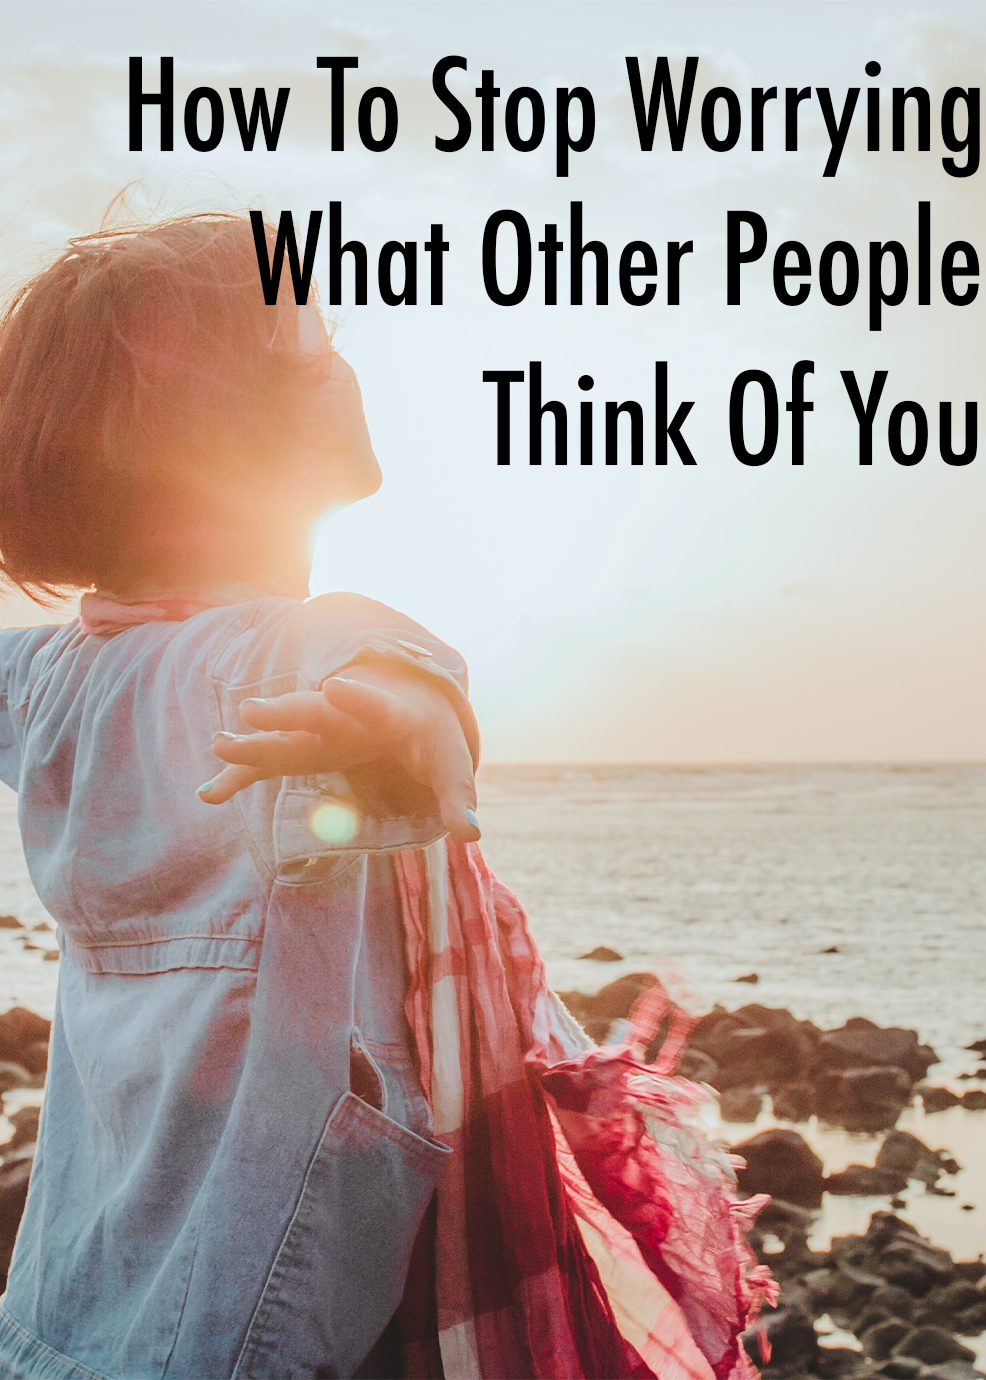 How To Stop Worrying What Other People Think Of You Video